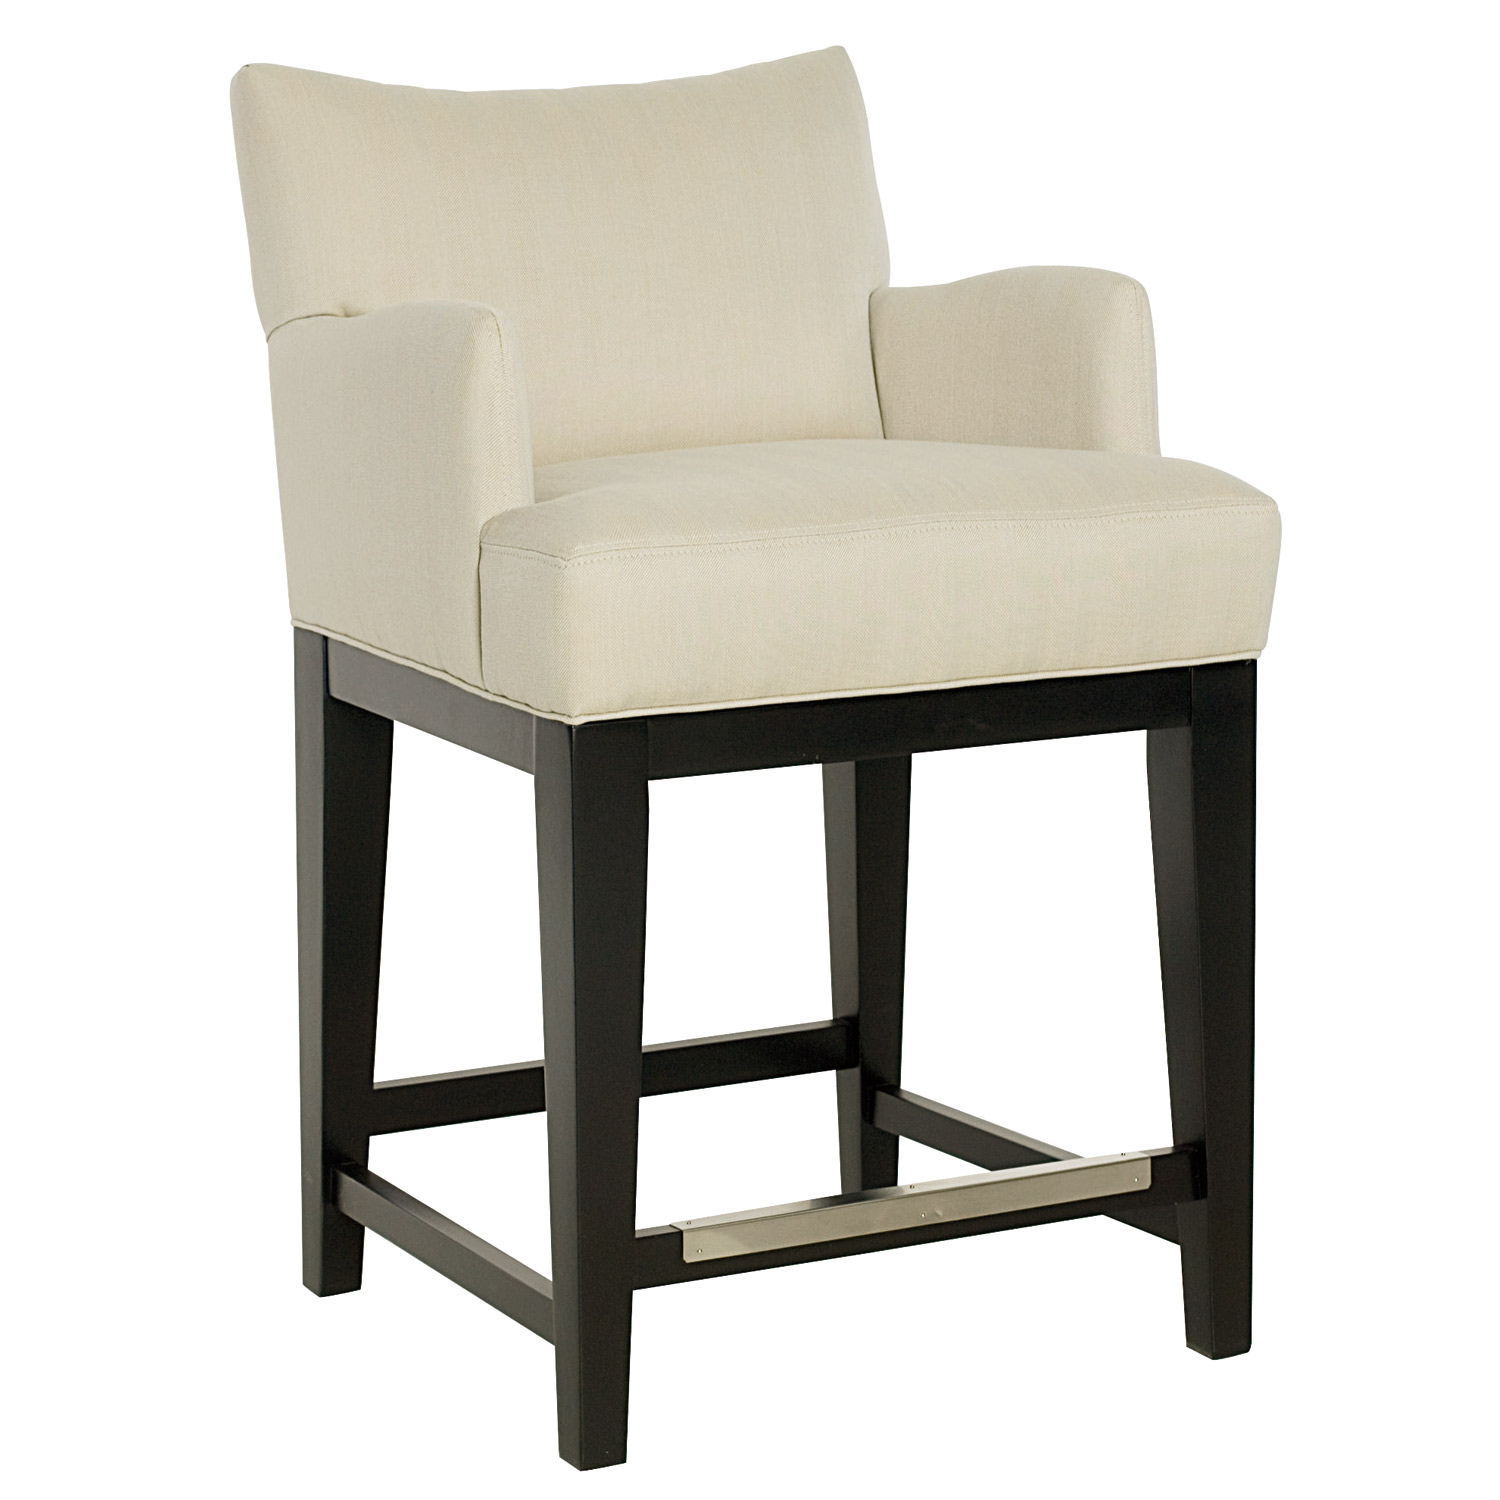 White Chair Bar Stools Backs